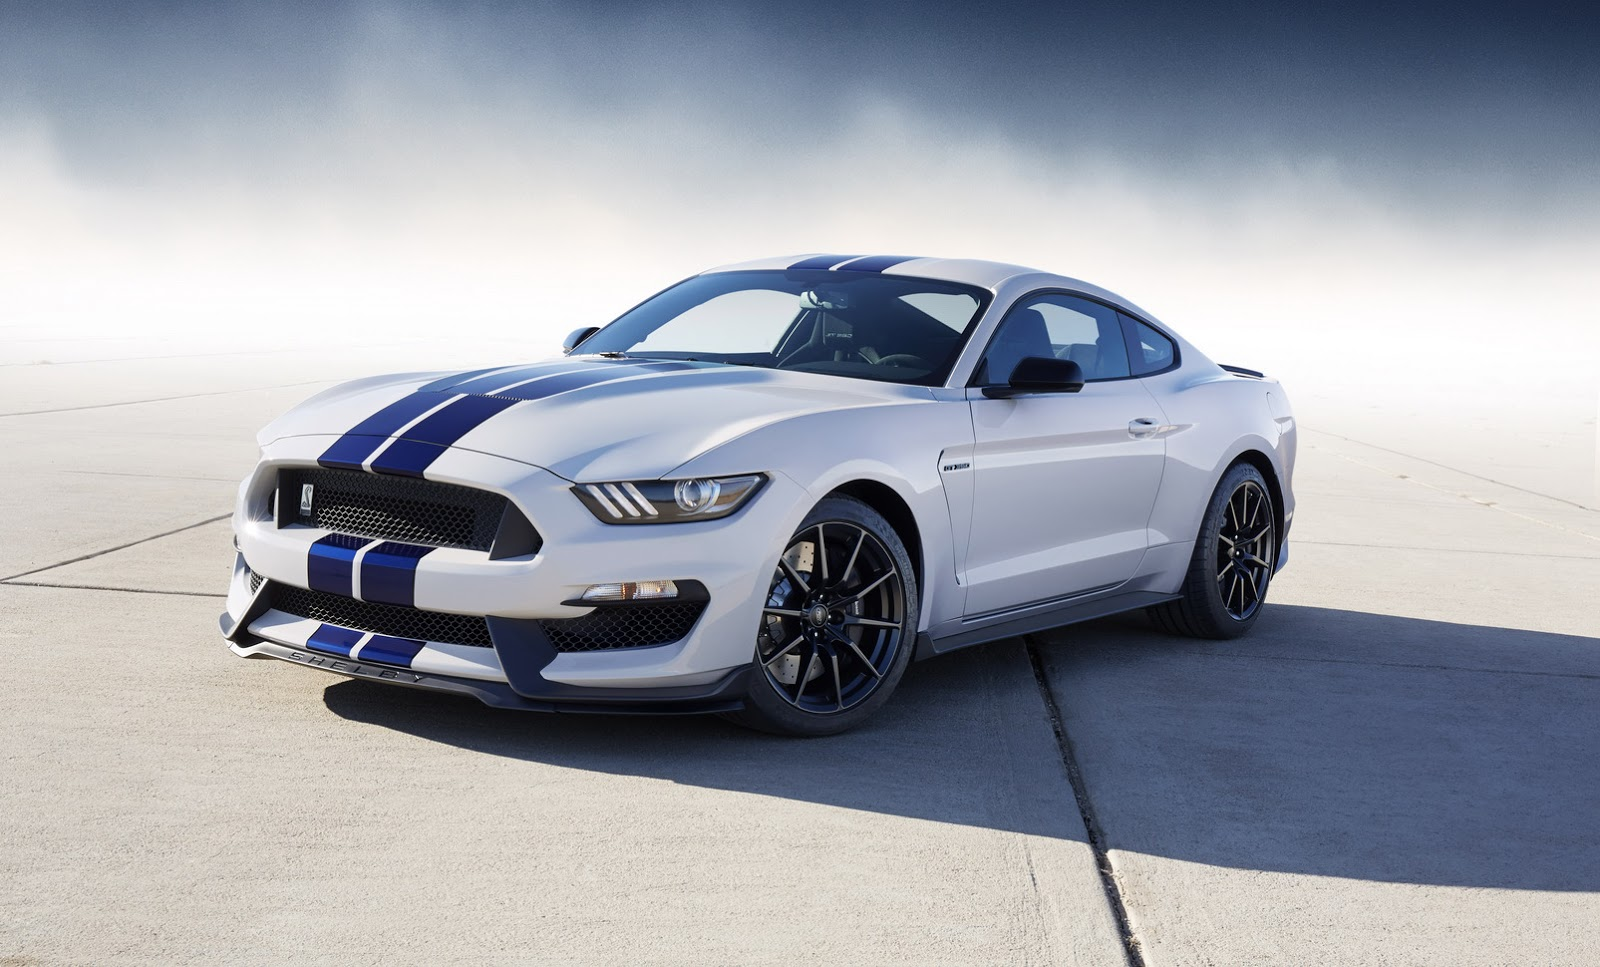 New-Ford-Mustang-Shelby-GT350-38.jpg